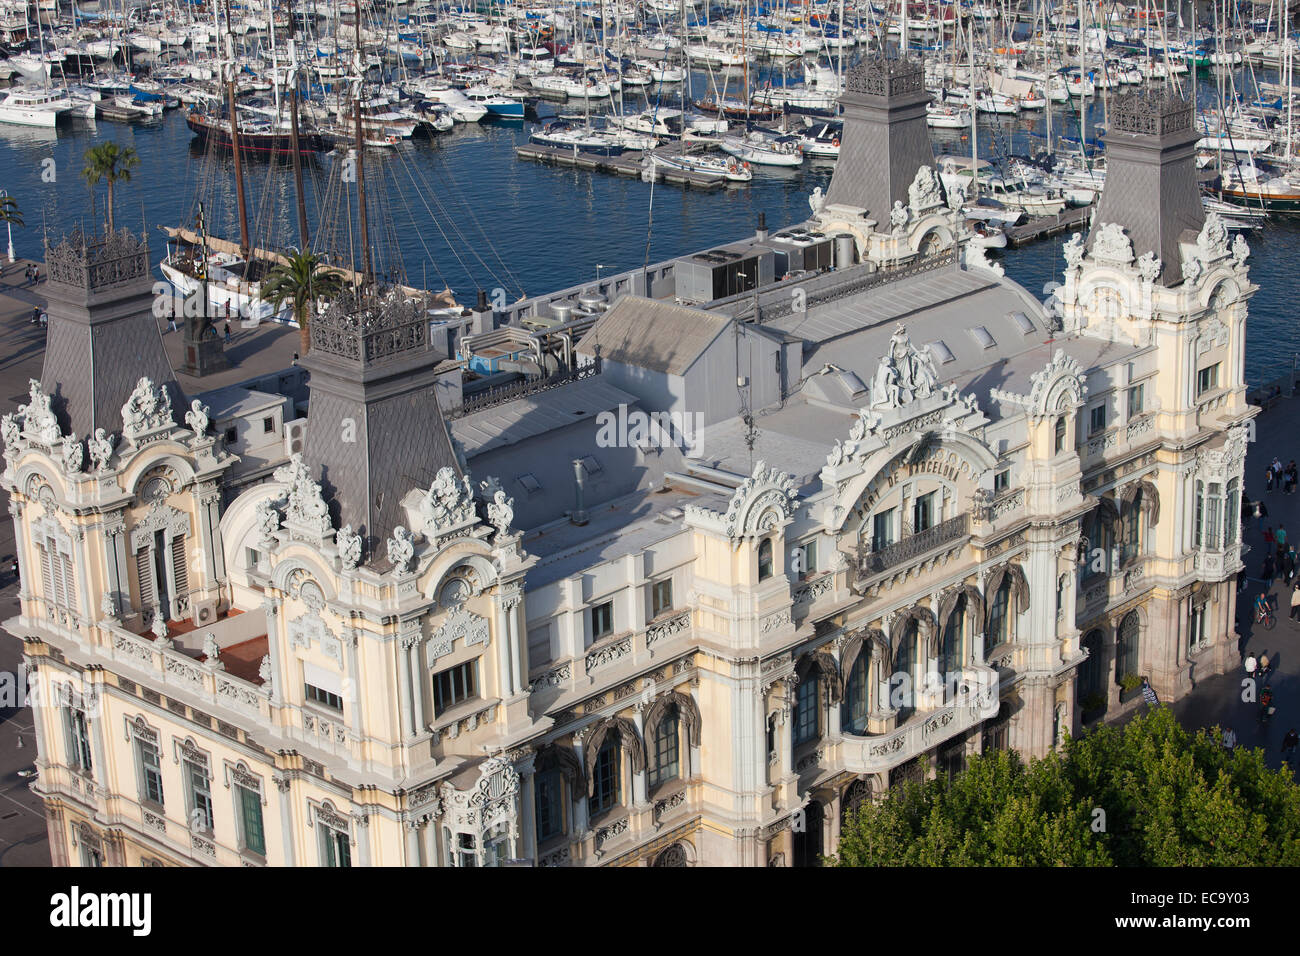 Port Authority of Barcelona building from above in Port Vell, Barcelona, Catalonia, Spain. - Stock Image